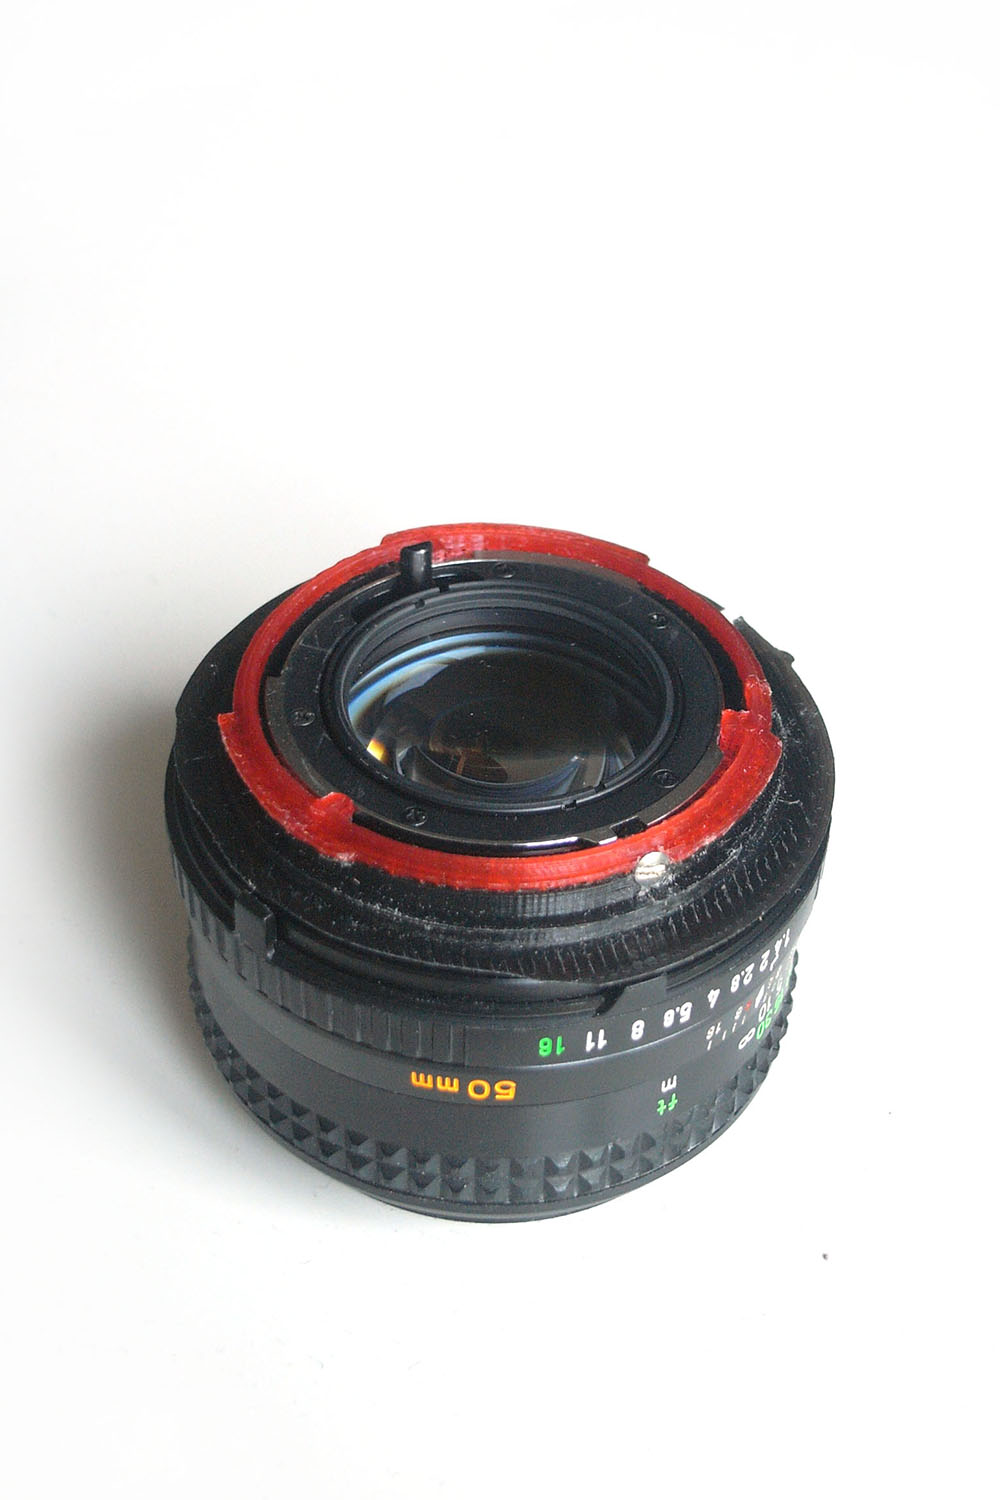 Minolta MD Rokkor 50/1.4 with thin MD>EF adapter - lens locking screw visible on the photo.